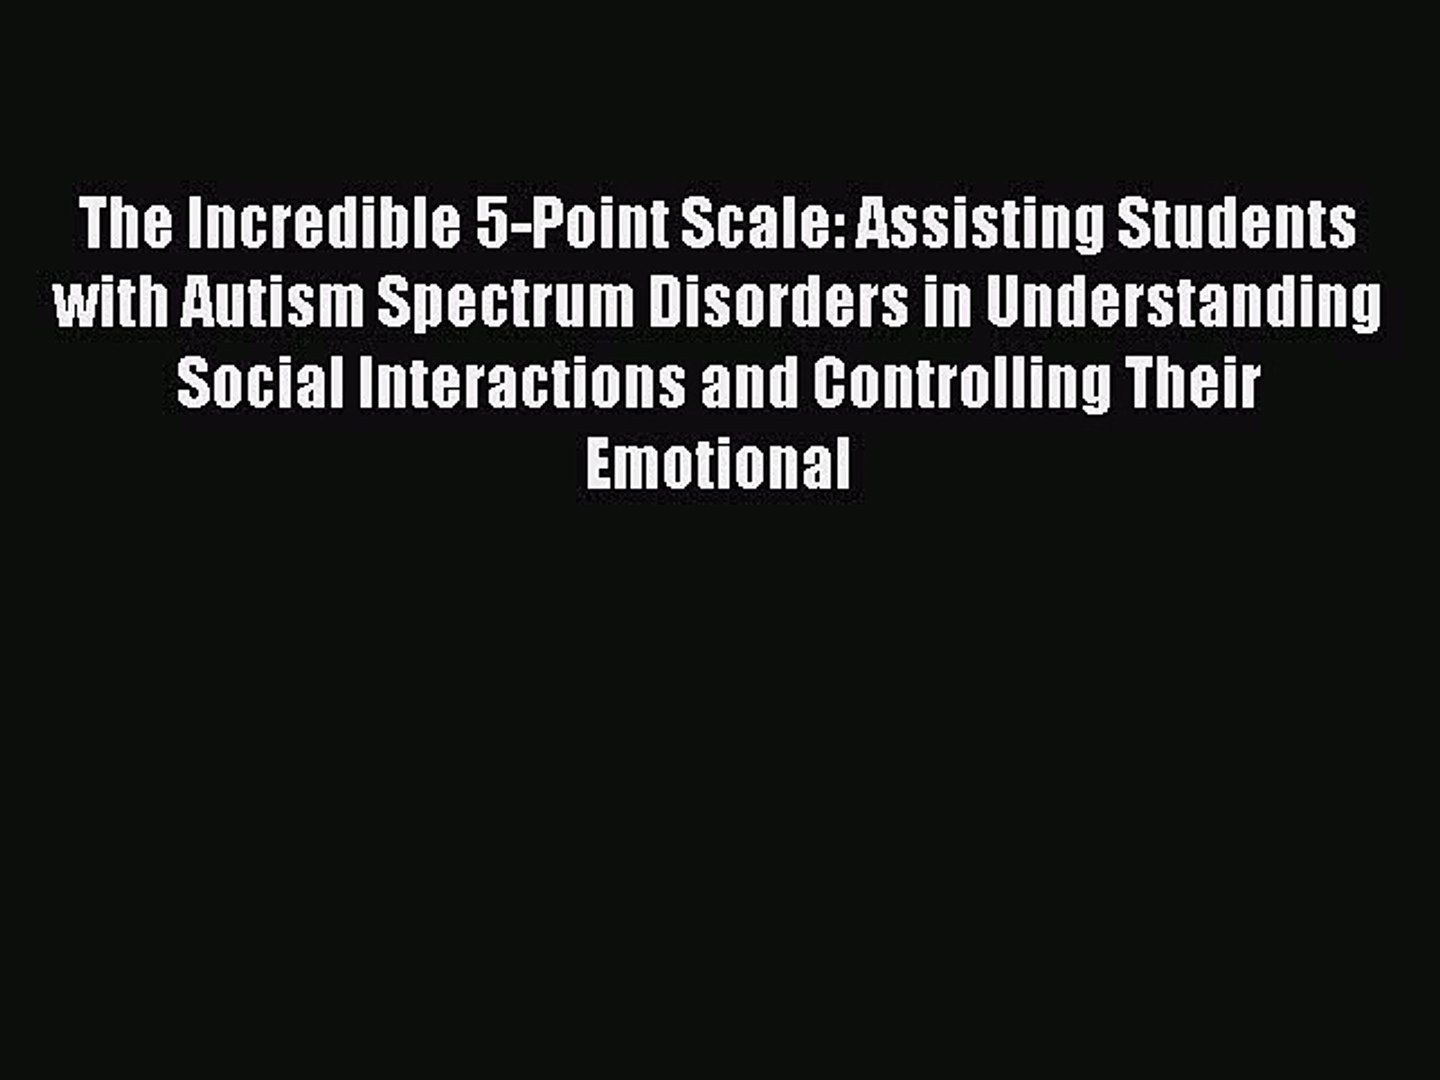 Pdf The Incredible 5 Point Scale Assisting Students With Autism Spectrum Disorders In Understanding Video Dailymotion